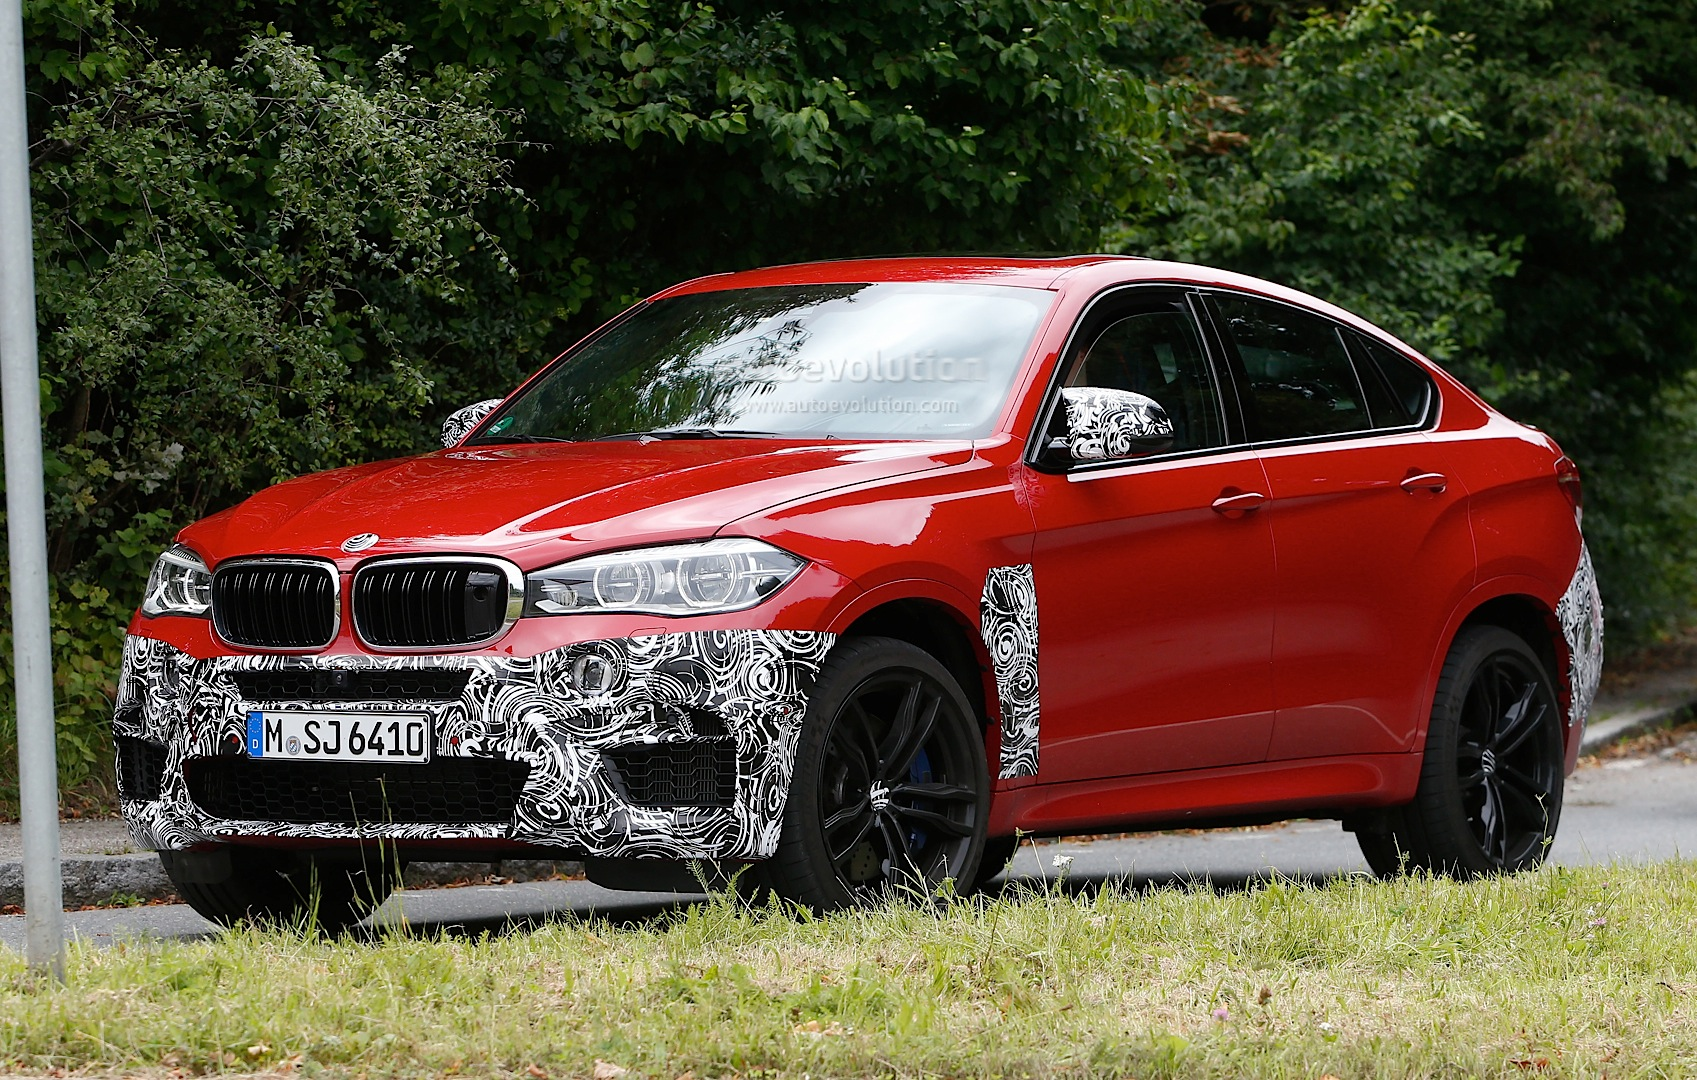 Bmw X6 Boot Space >> All-New BMW X6 M (F86) Spied with Minimal Camouflage: the Super-SAC - autoevolution